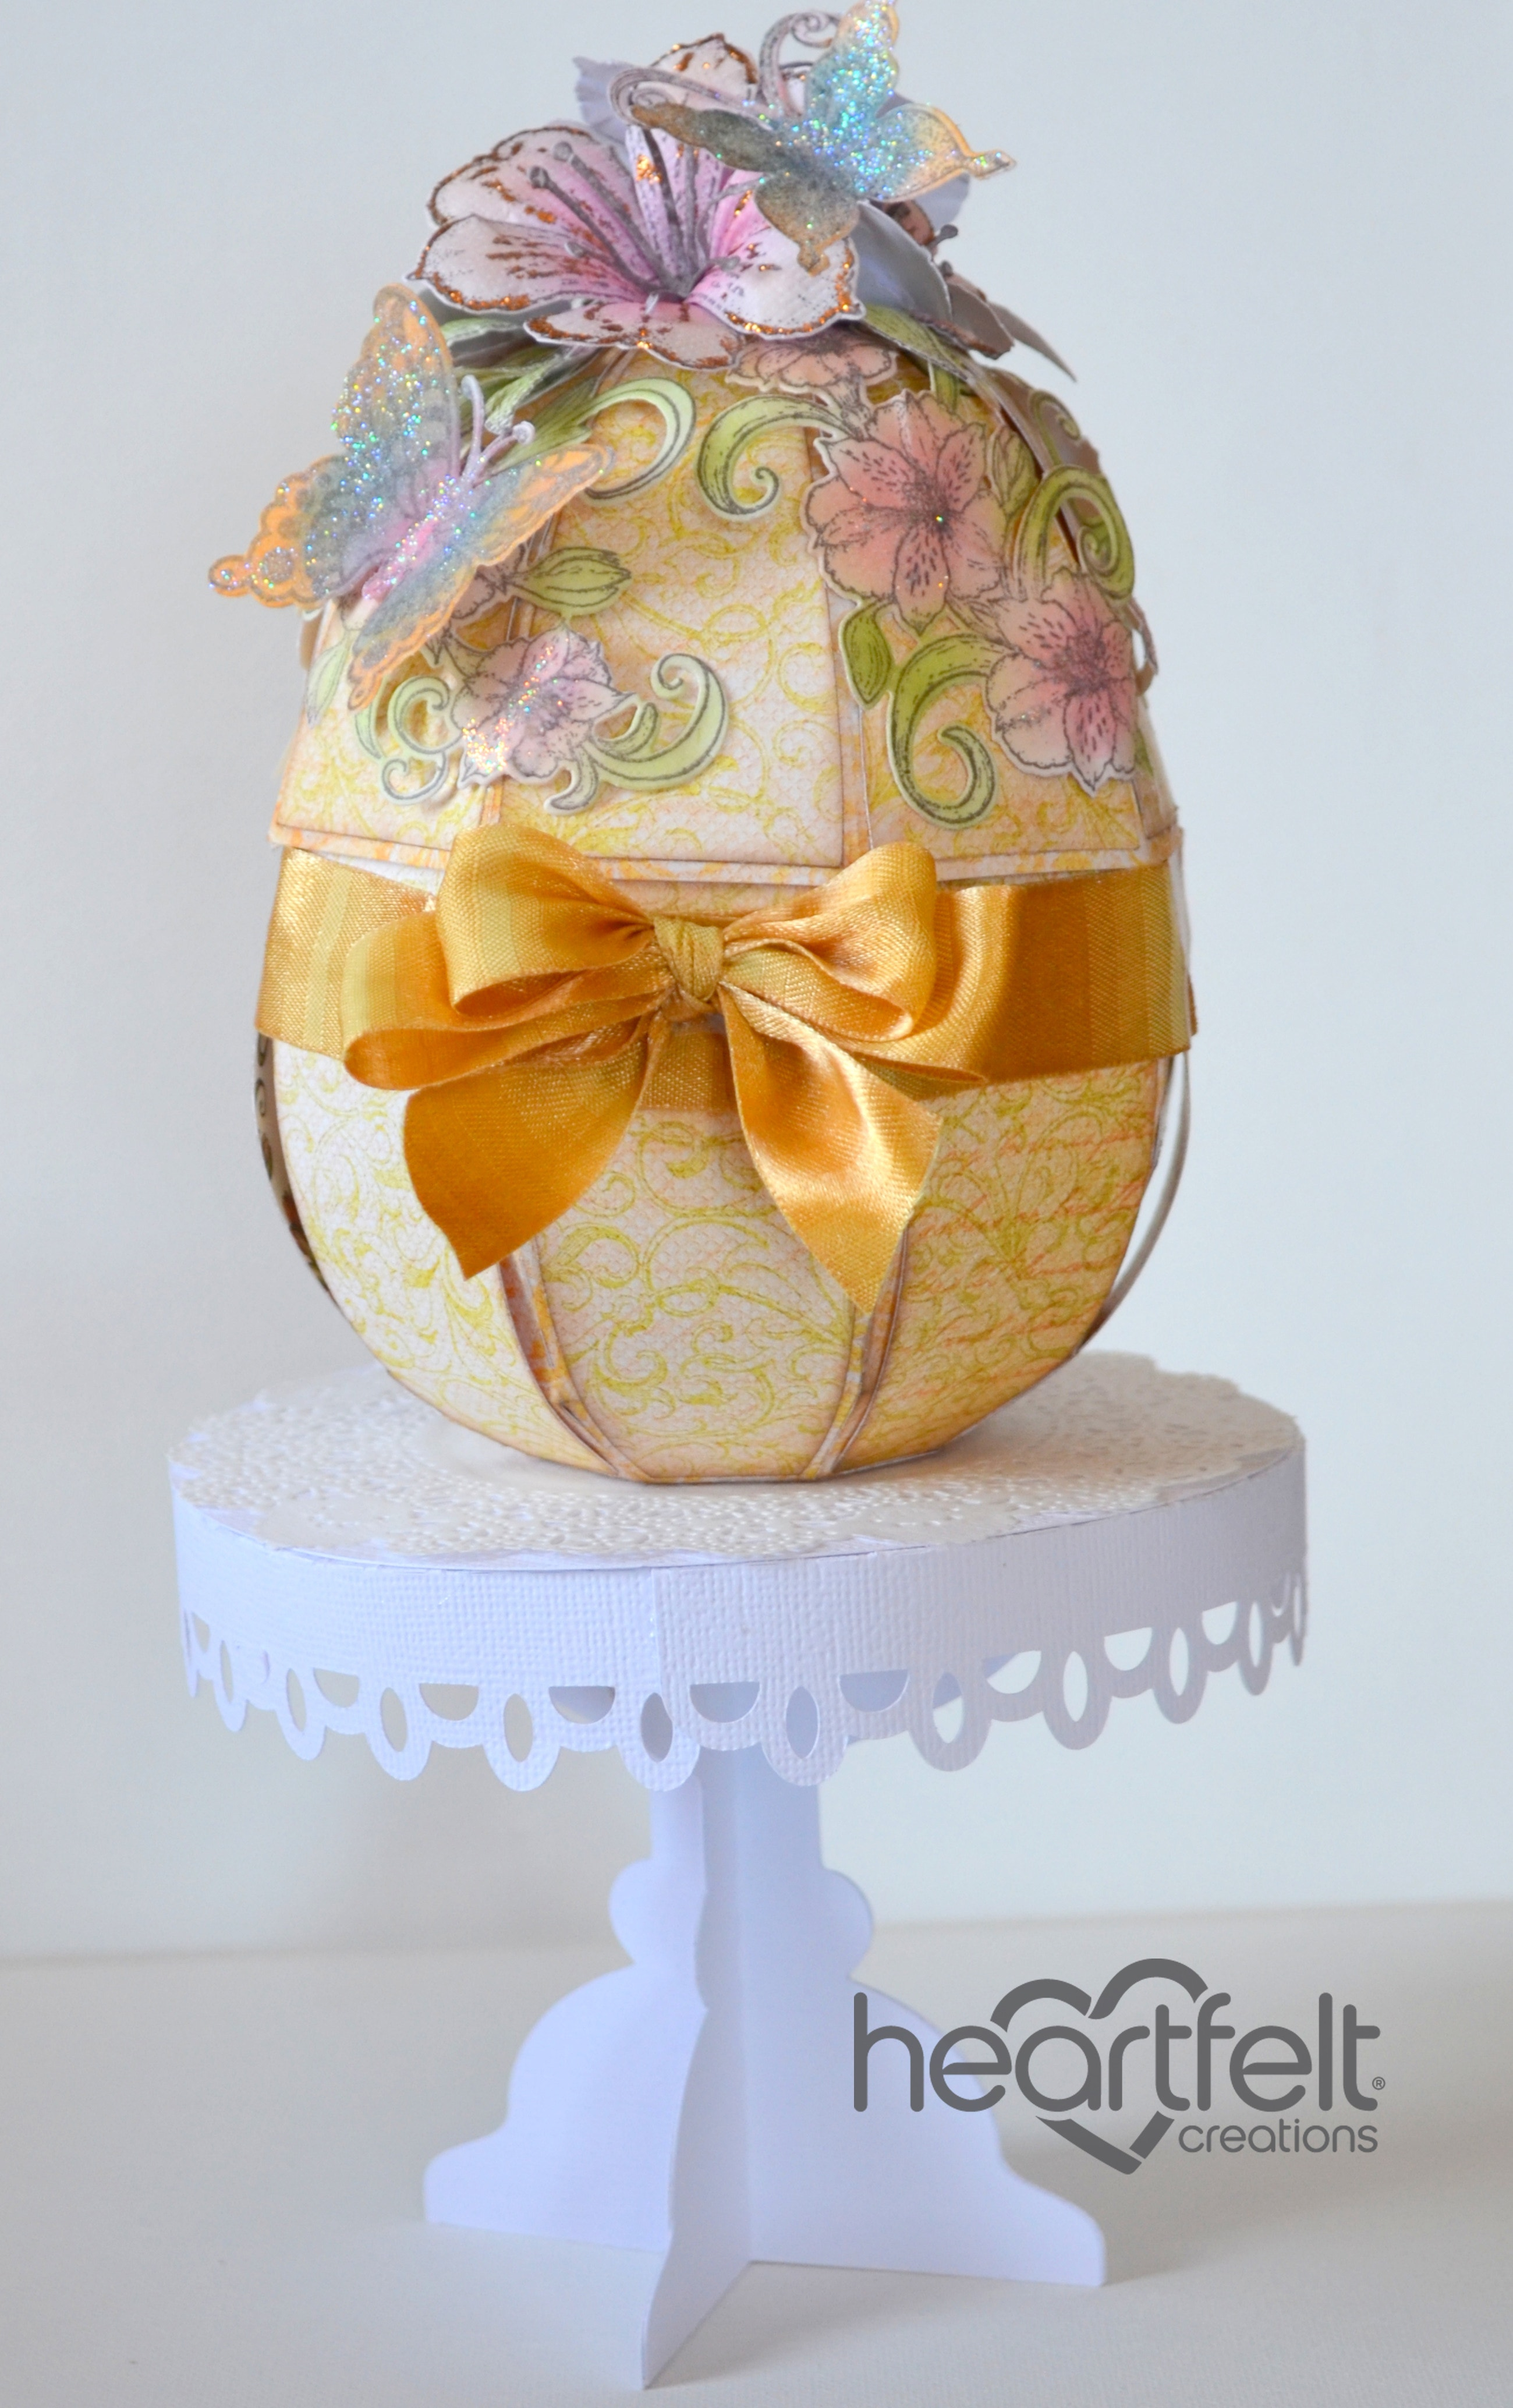 Gallery sunrise lily easter egg gift box heartfelt creations using an electronic die cutting machine cut out egg and pedestal base using white card stock assemble according to cutting file instructions negle Image collections